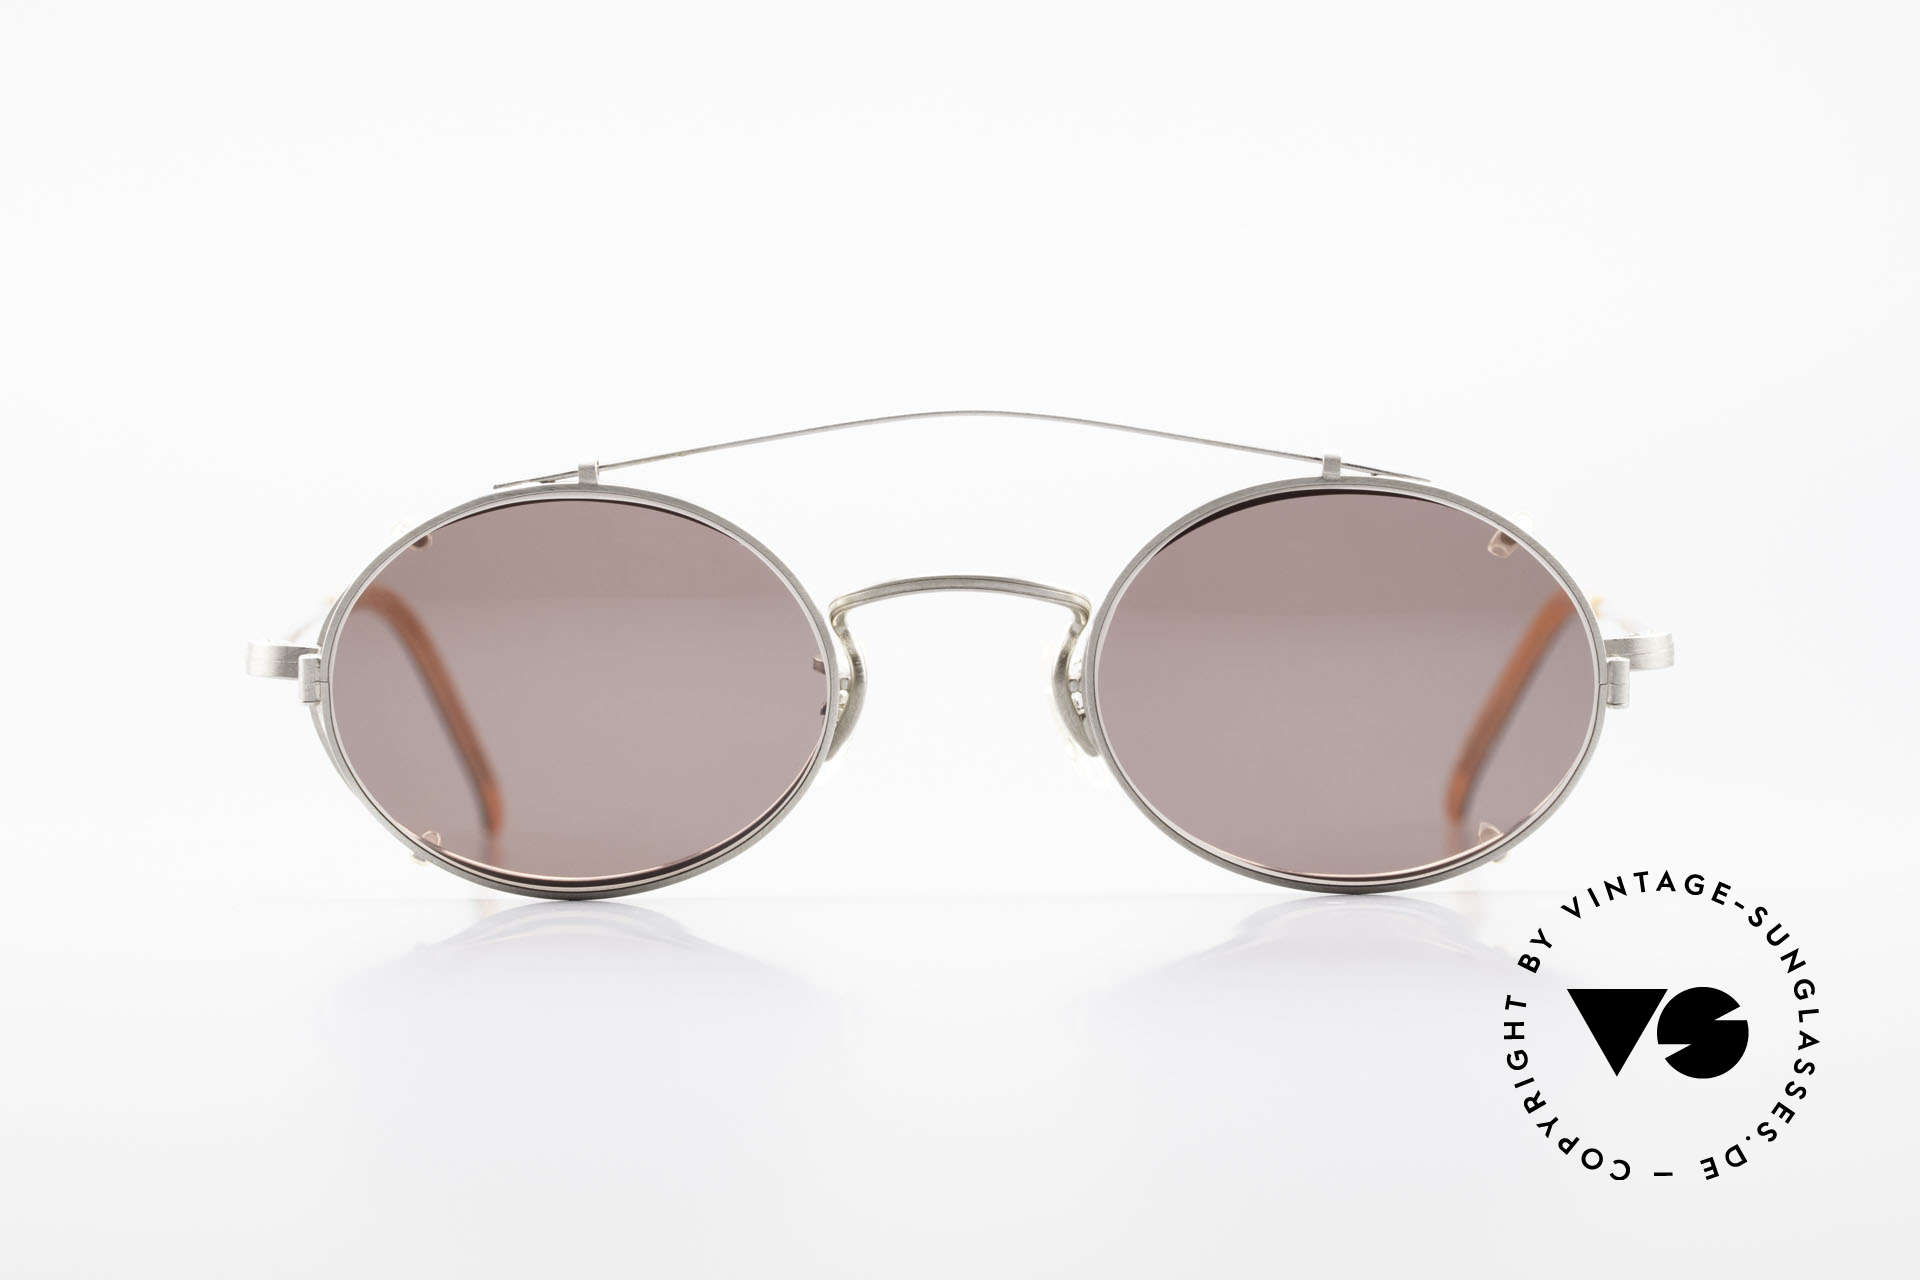 Paul Smith PS100 Oval Vintage Frame Clip On, the time before PS Spectacles became licensed products, Made for Men and Women